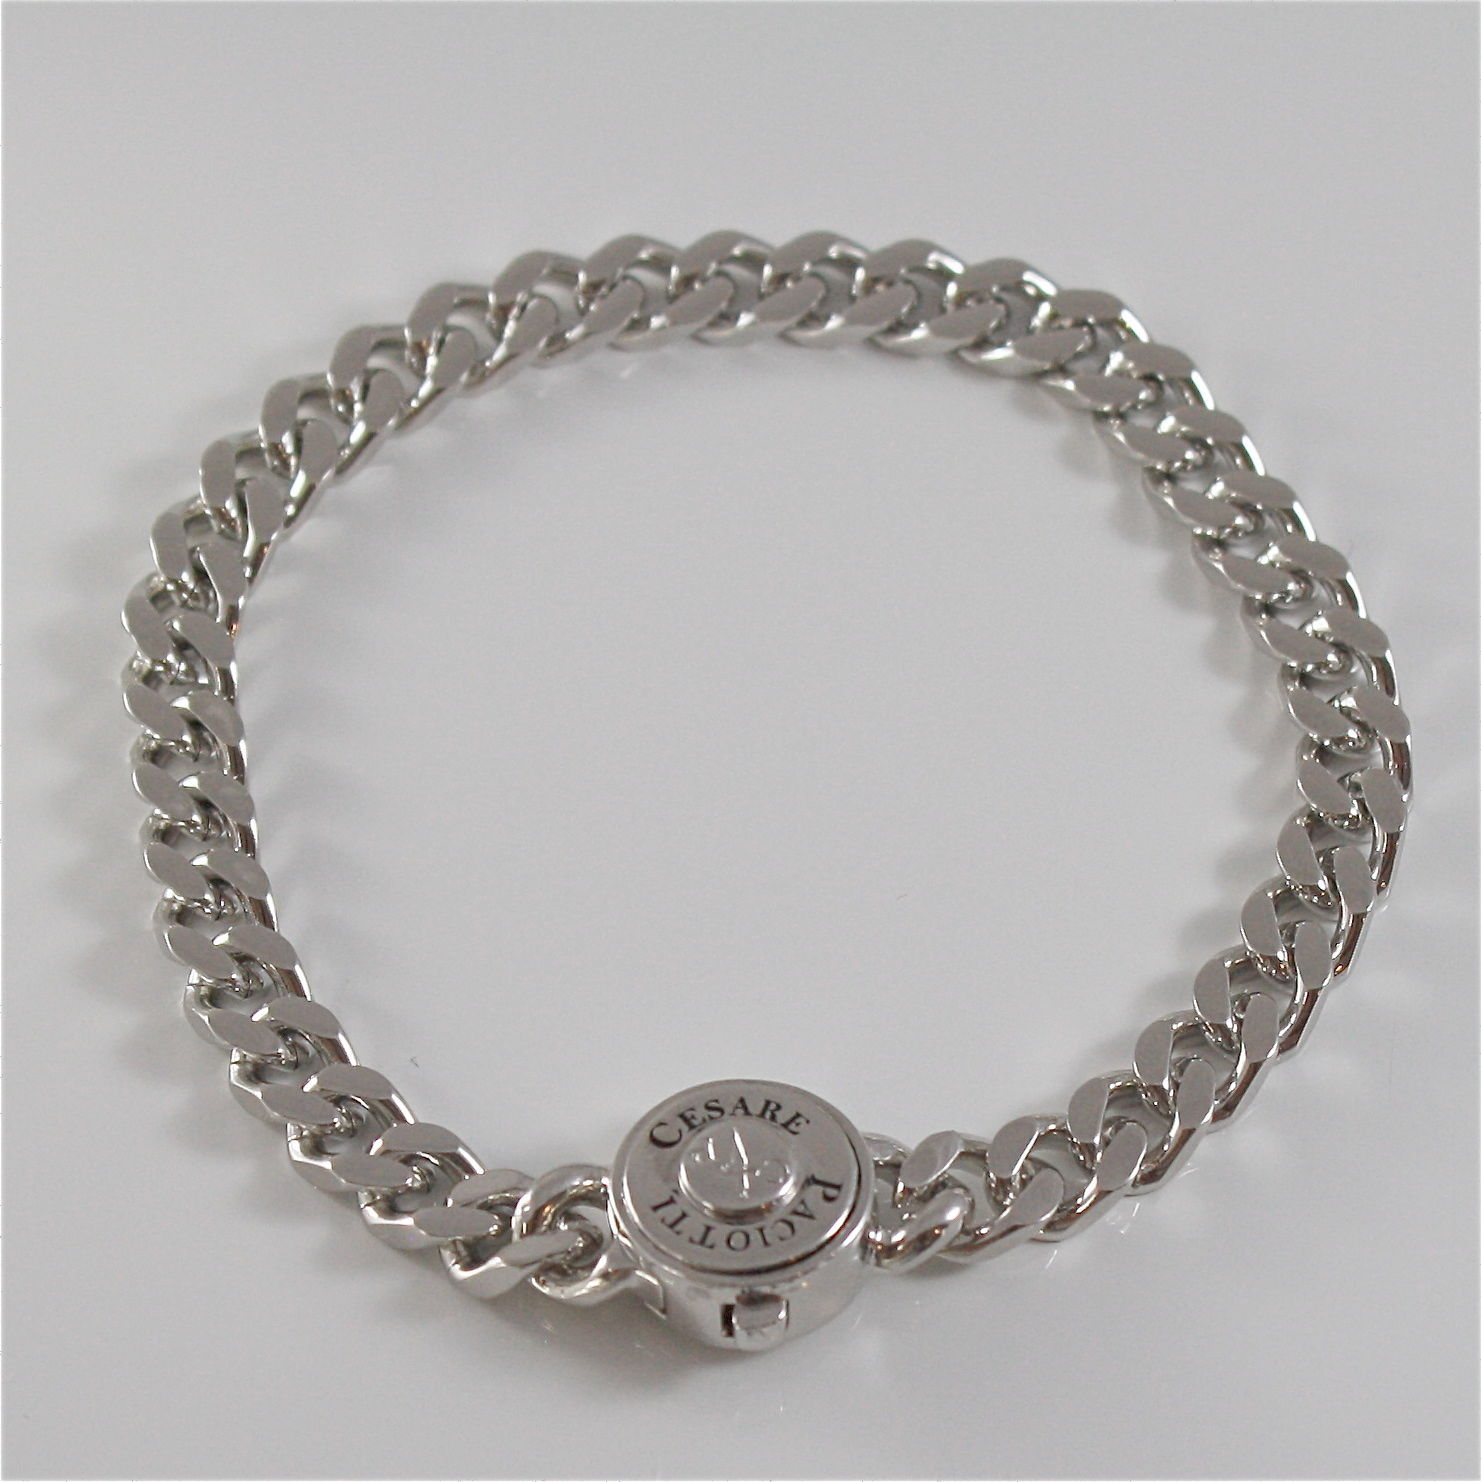 925 SILVER AND STAINLESS STEEL BRACELET BY CESARE PACIOTTI 20 CM JPBR1269B